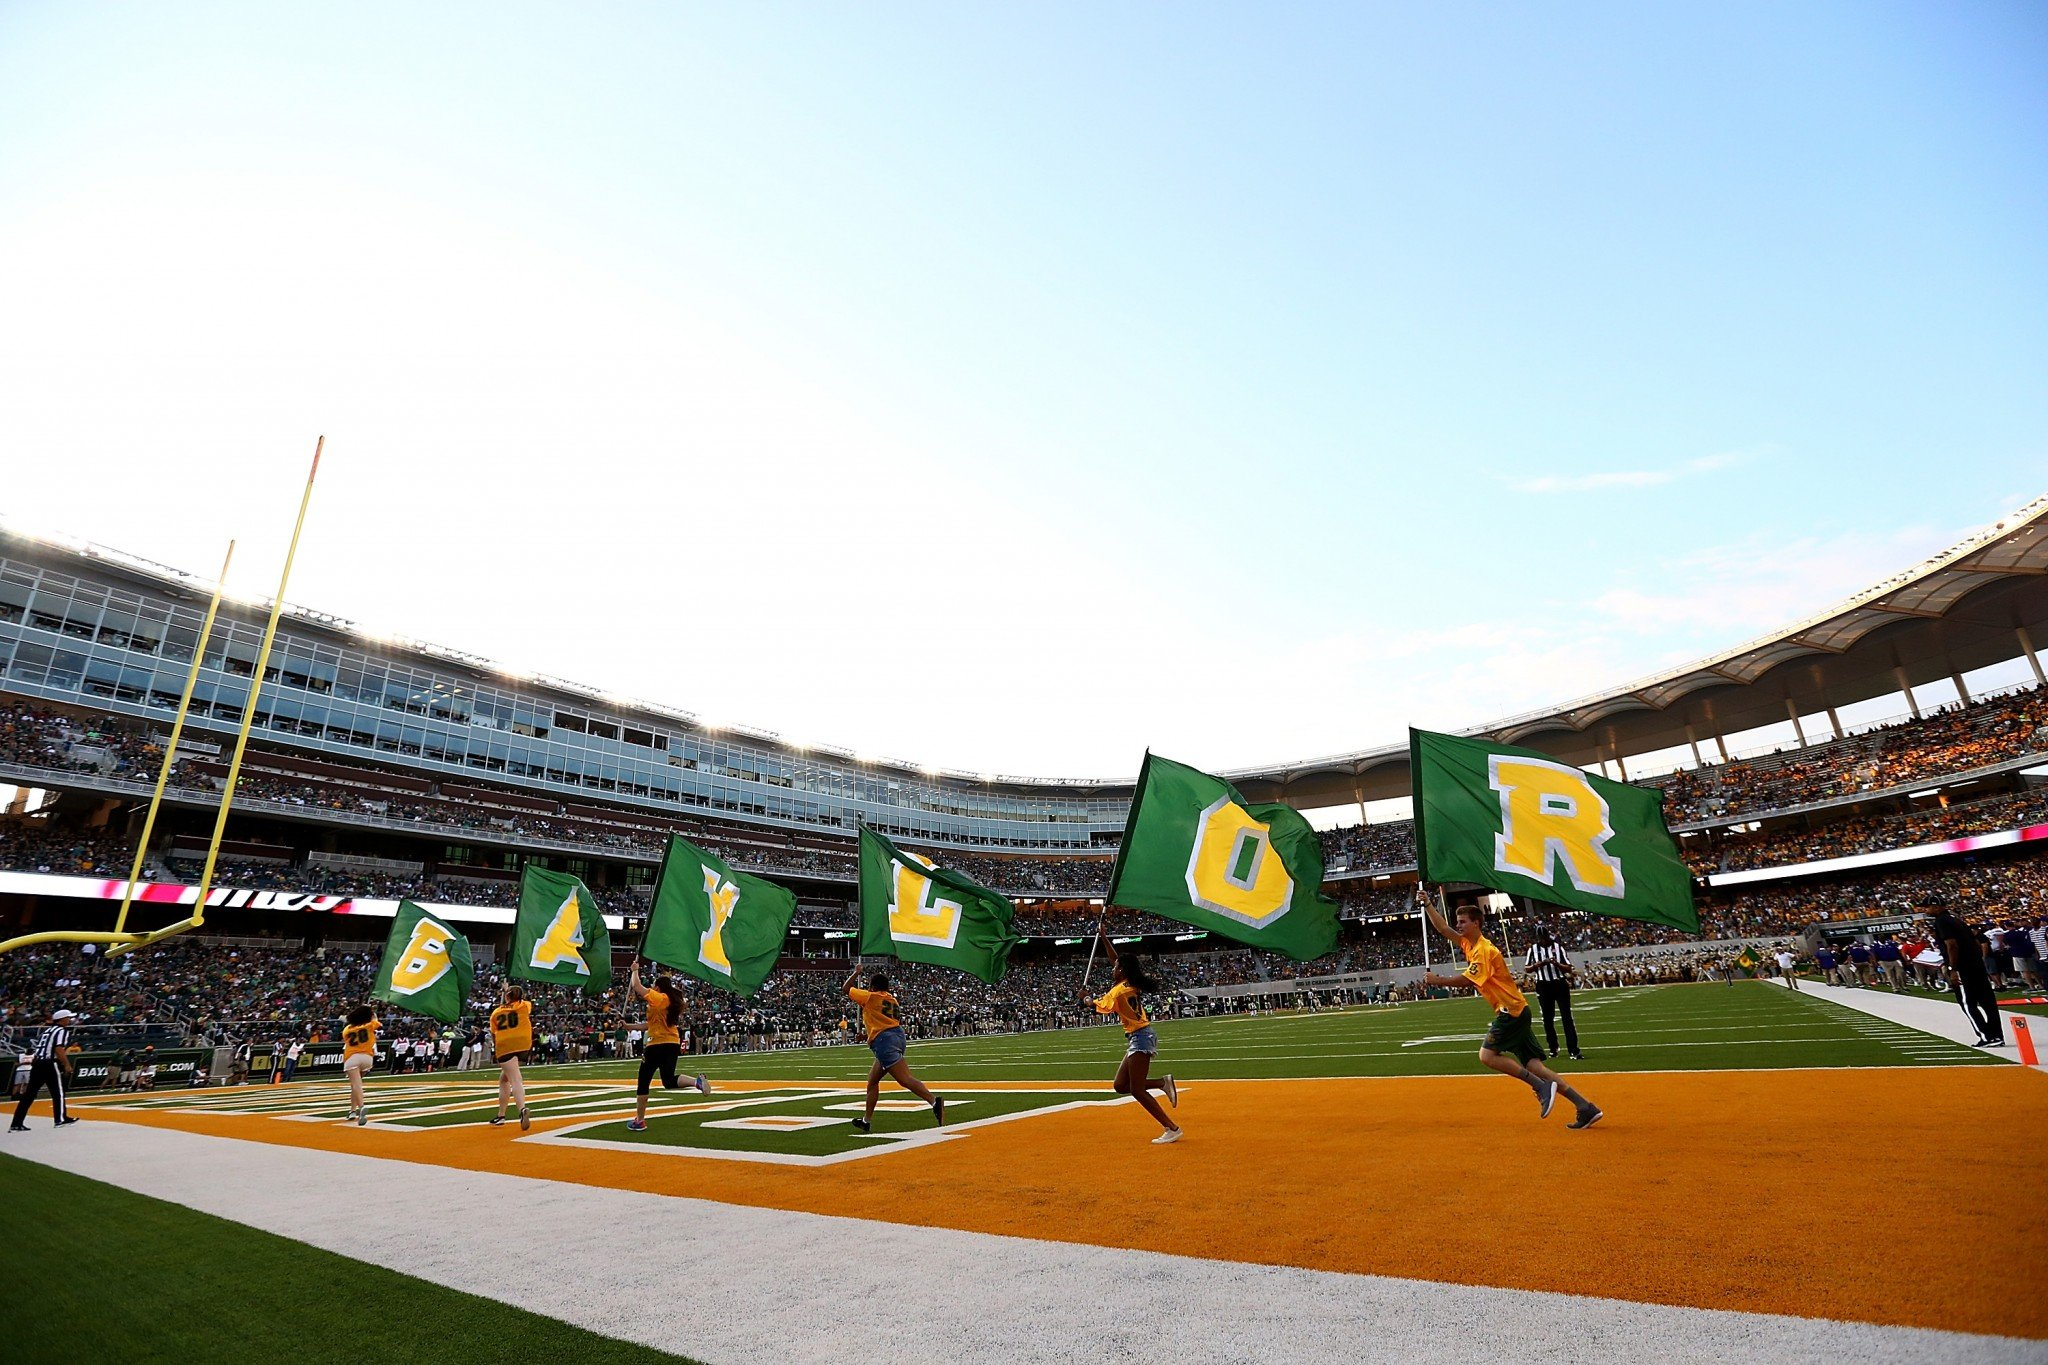 Baylor's associate athletic director was arrested earlier this month for assaulting a sportswriter. (Getty)